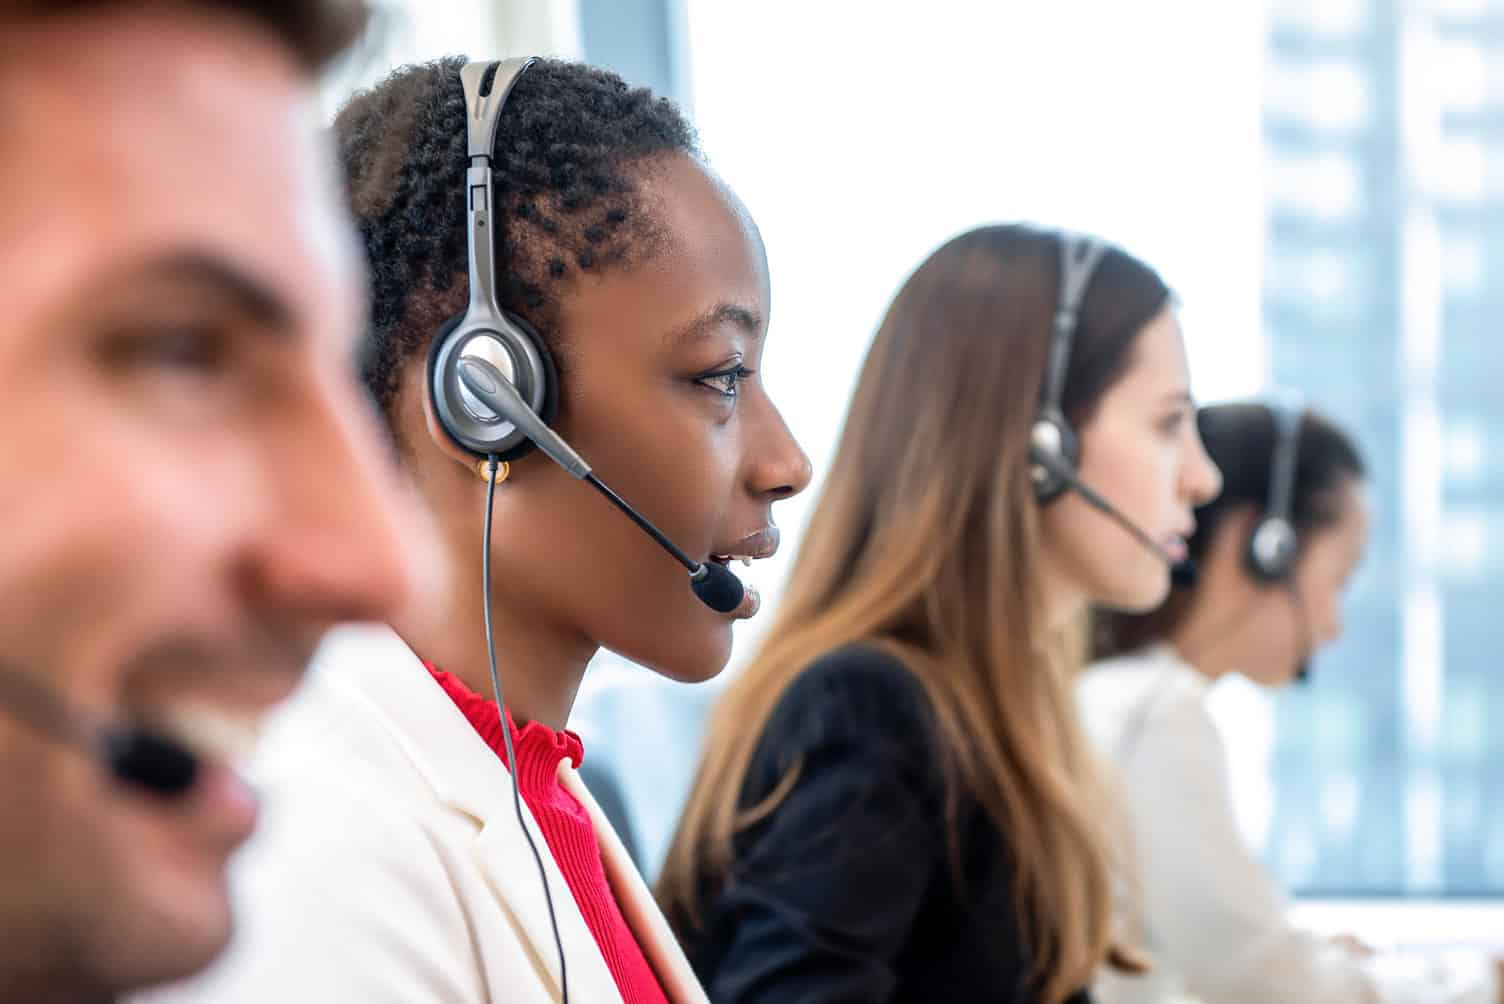 World Leading Call Center Boosts Diversity Hiring By Nearly 2X